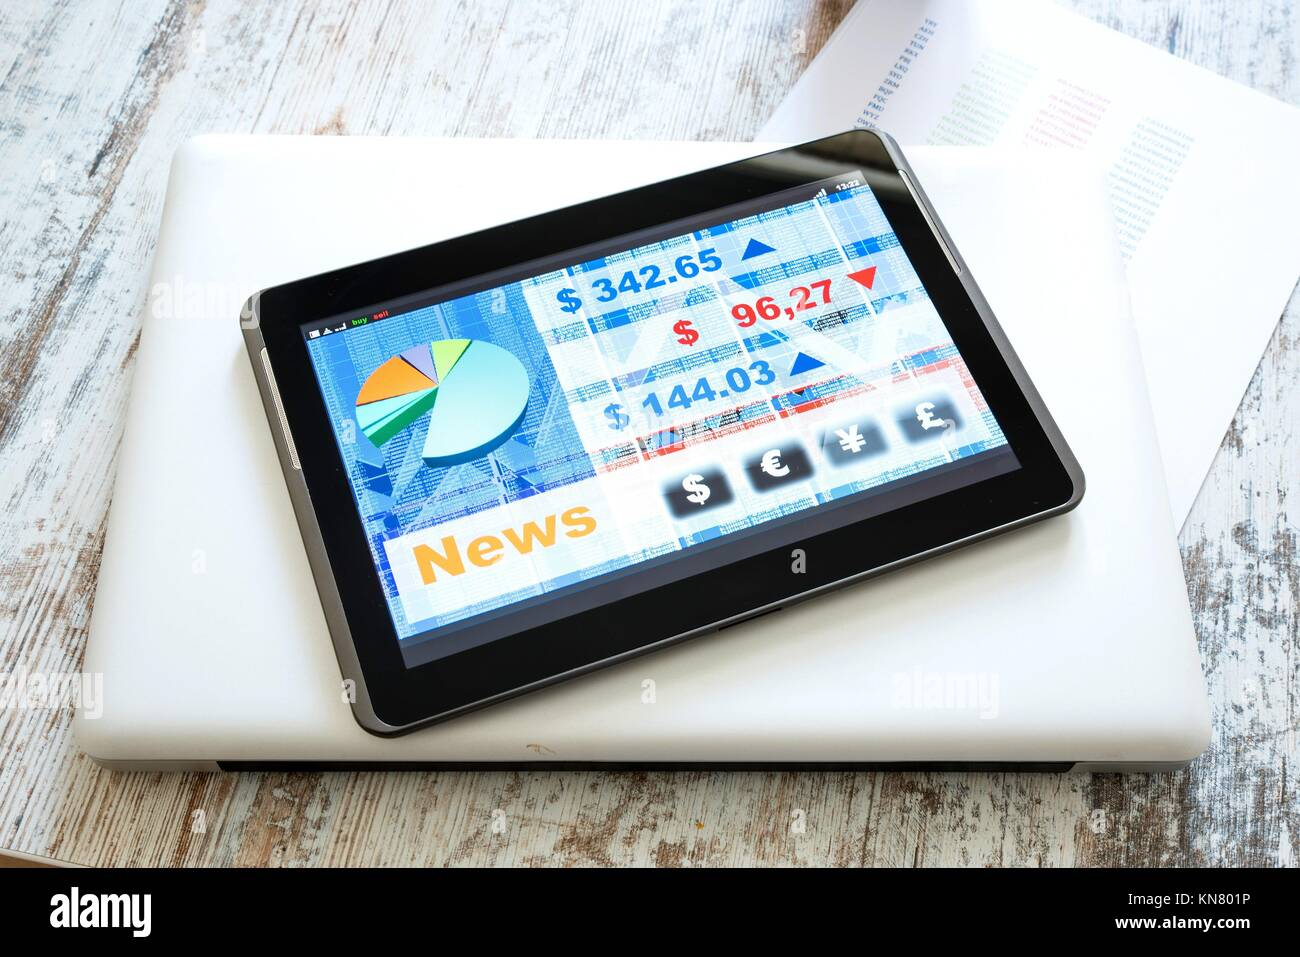 marketing pc tablets Discover the best computer tablets in best sellers find the top 100 most popular items in amazon electronics best sellers.